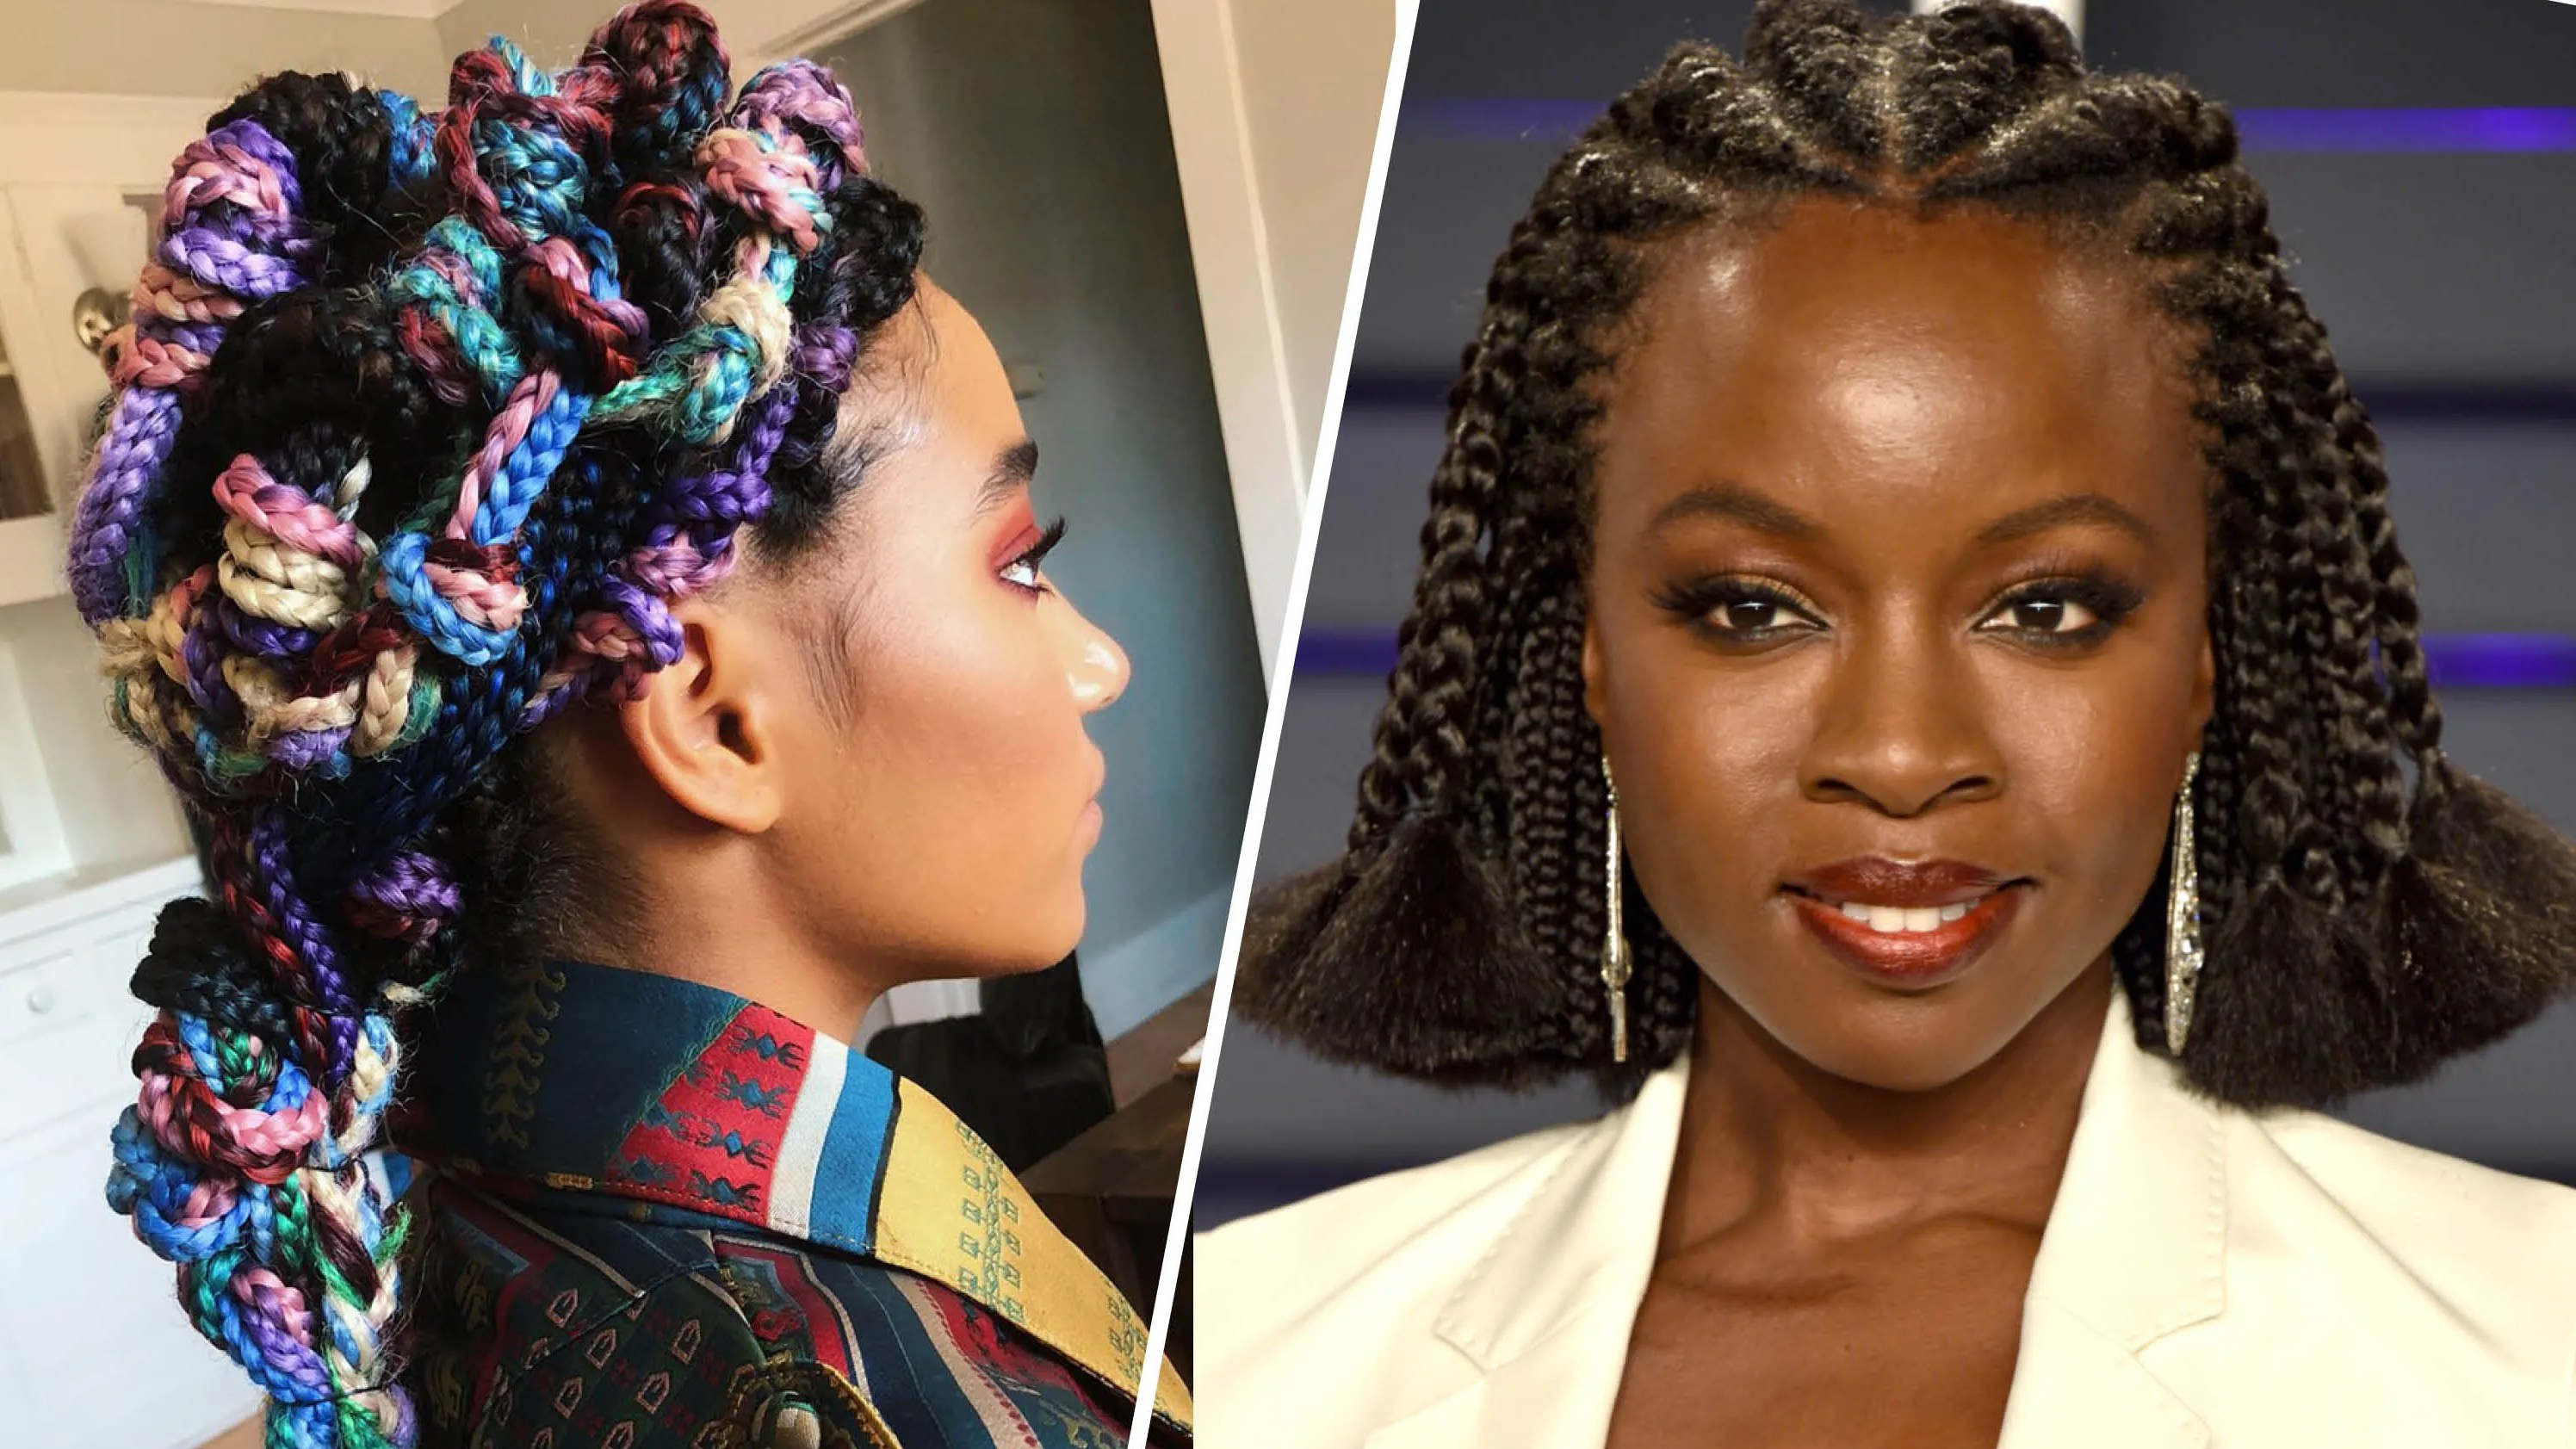 Straight Back With Beads: Straight Back Hairstyles 2018 With Beads